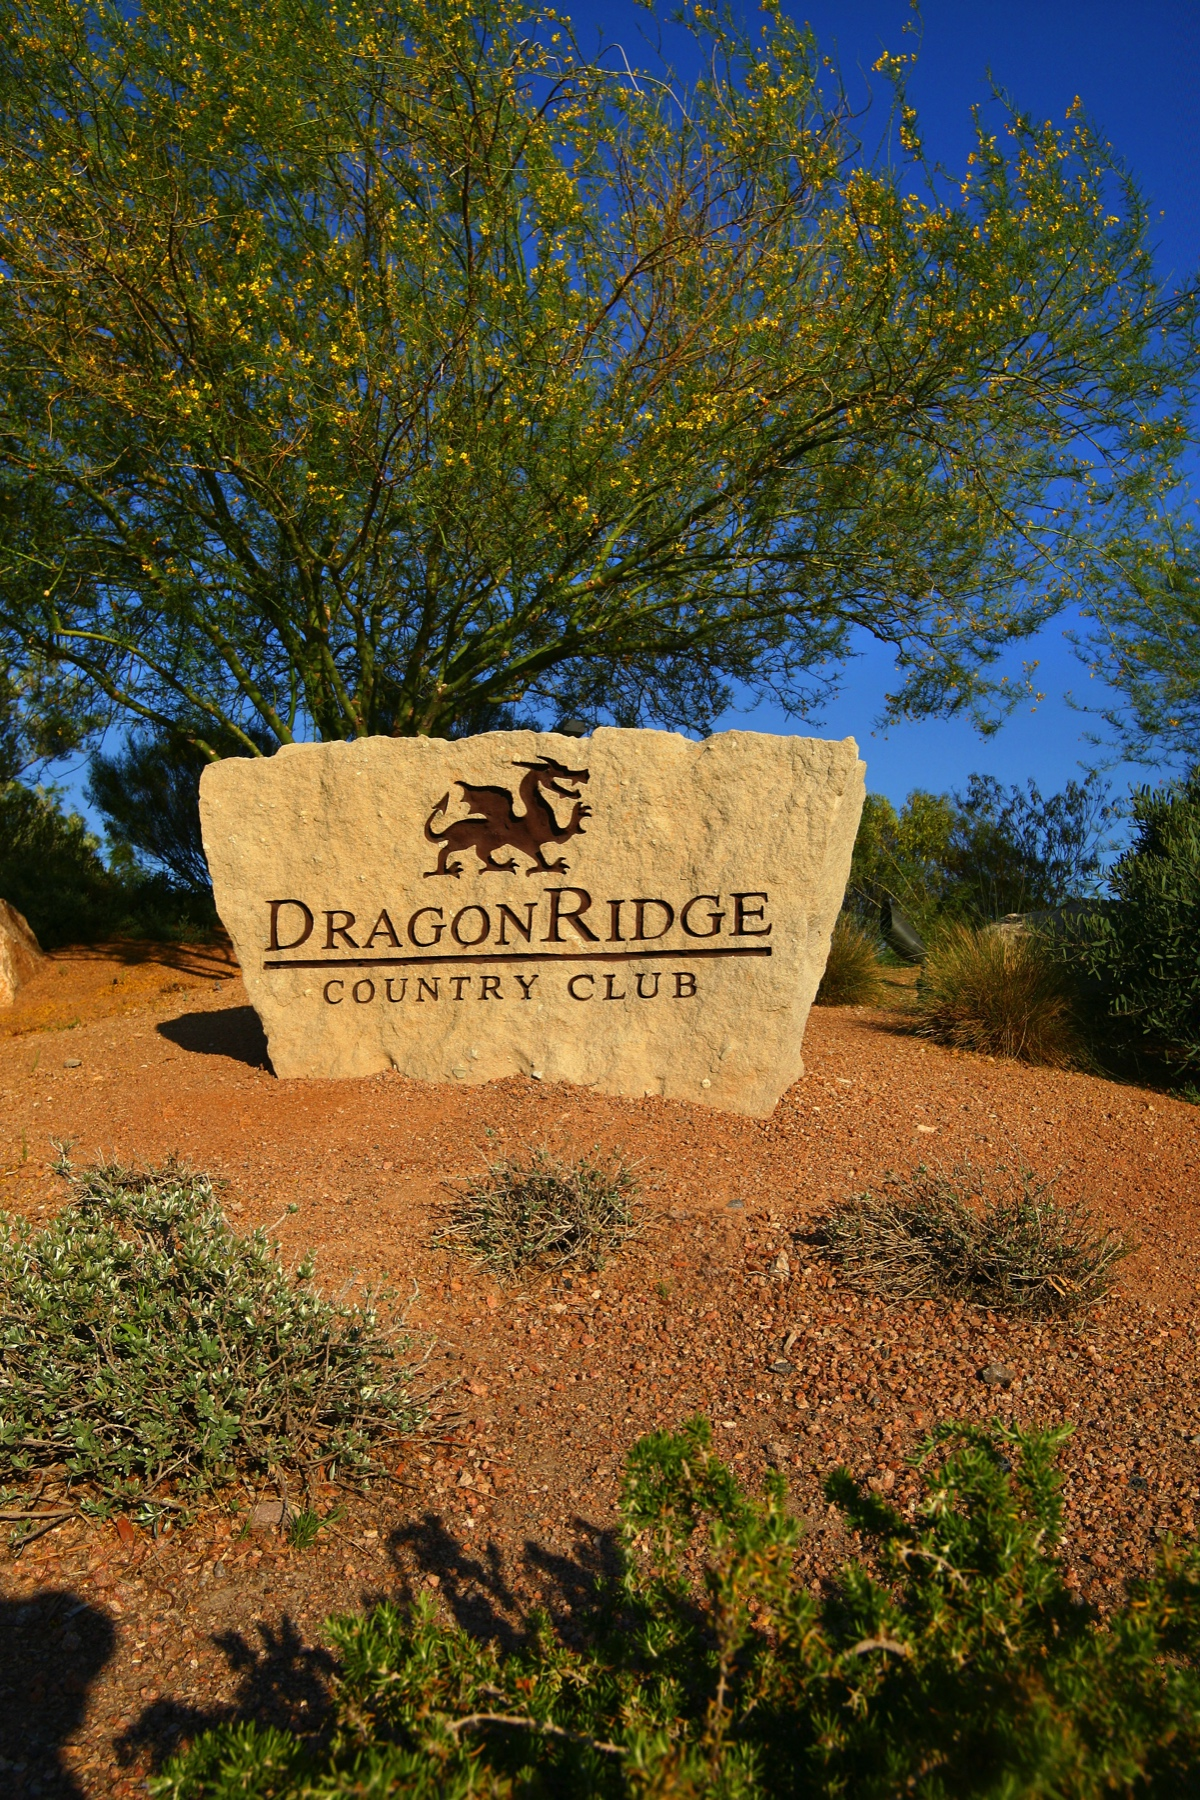 Additional photo for property listing at 780 Dragon Ridge Dr  Henderson, Nevada 89012 United States